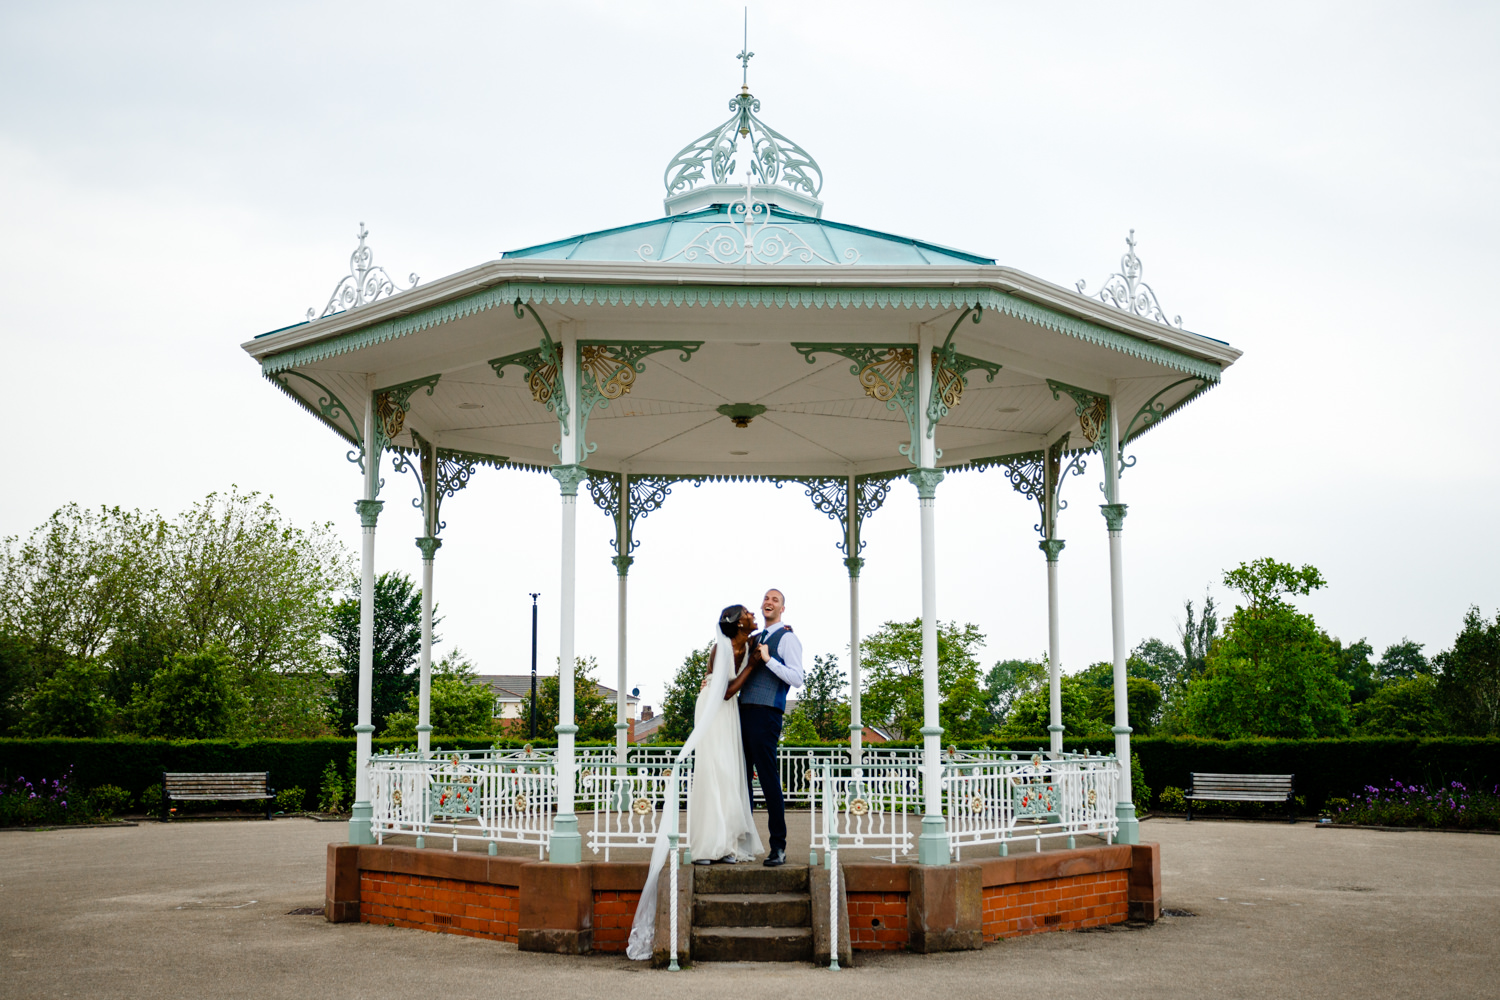 Flick and Will Liverpool Wedding Photographer-87.jpg